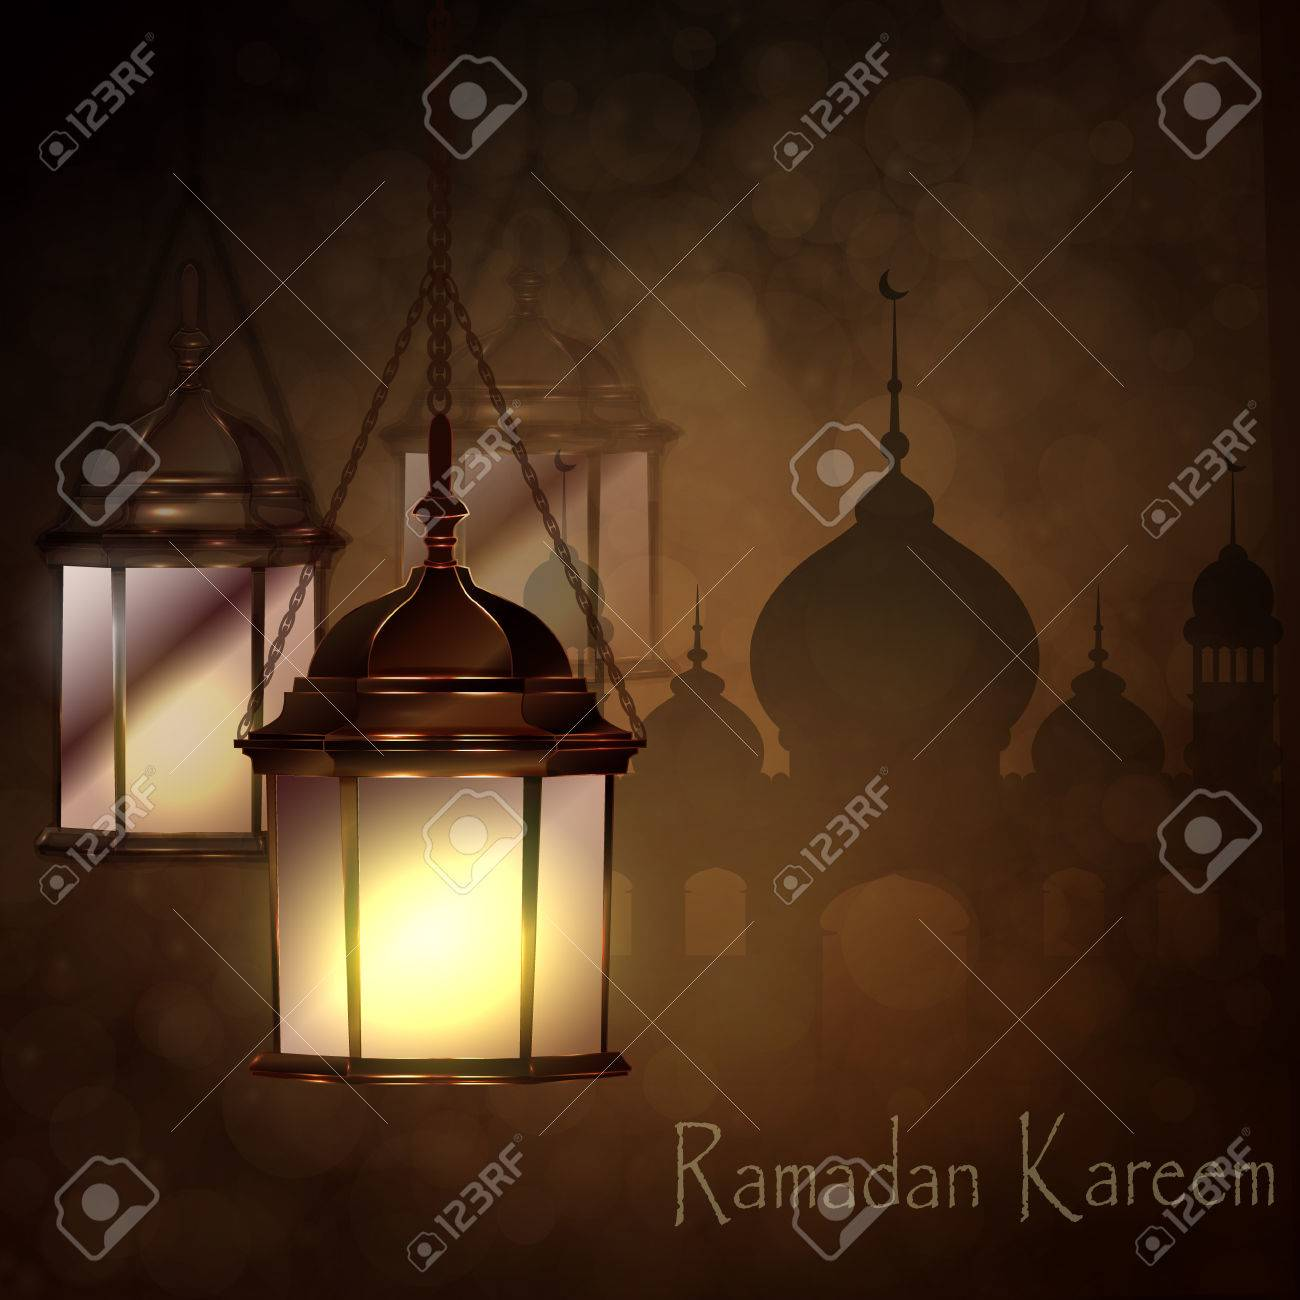 Intricate Arabic Lamps With Lights For Ramadan Kareem And Other Events On A  Bokeh Mosque Silhouette